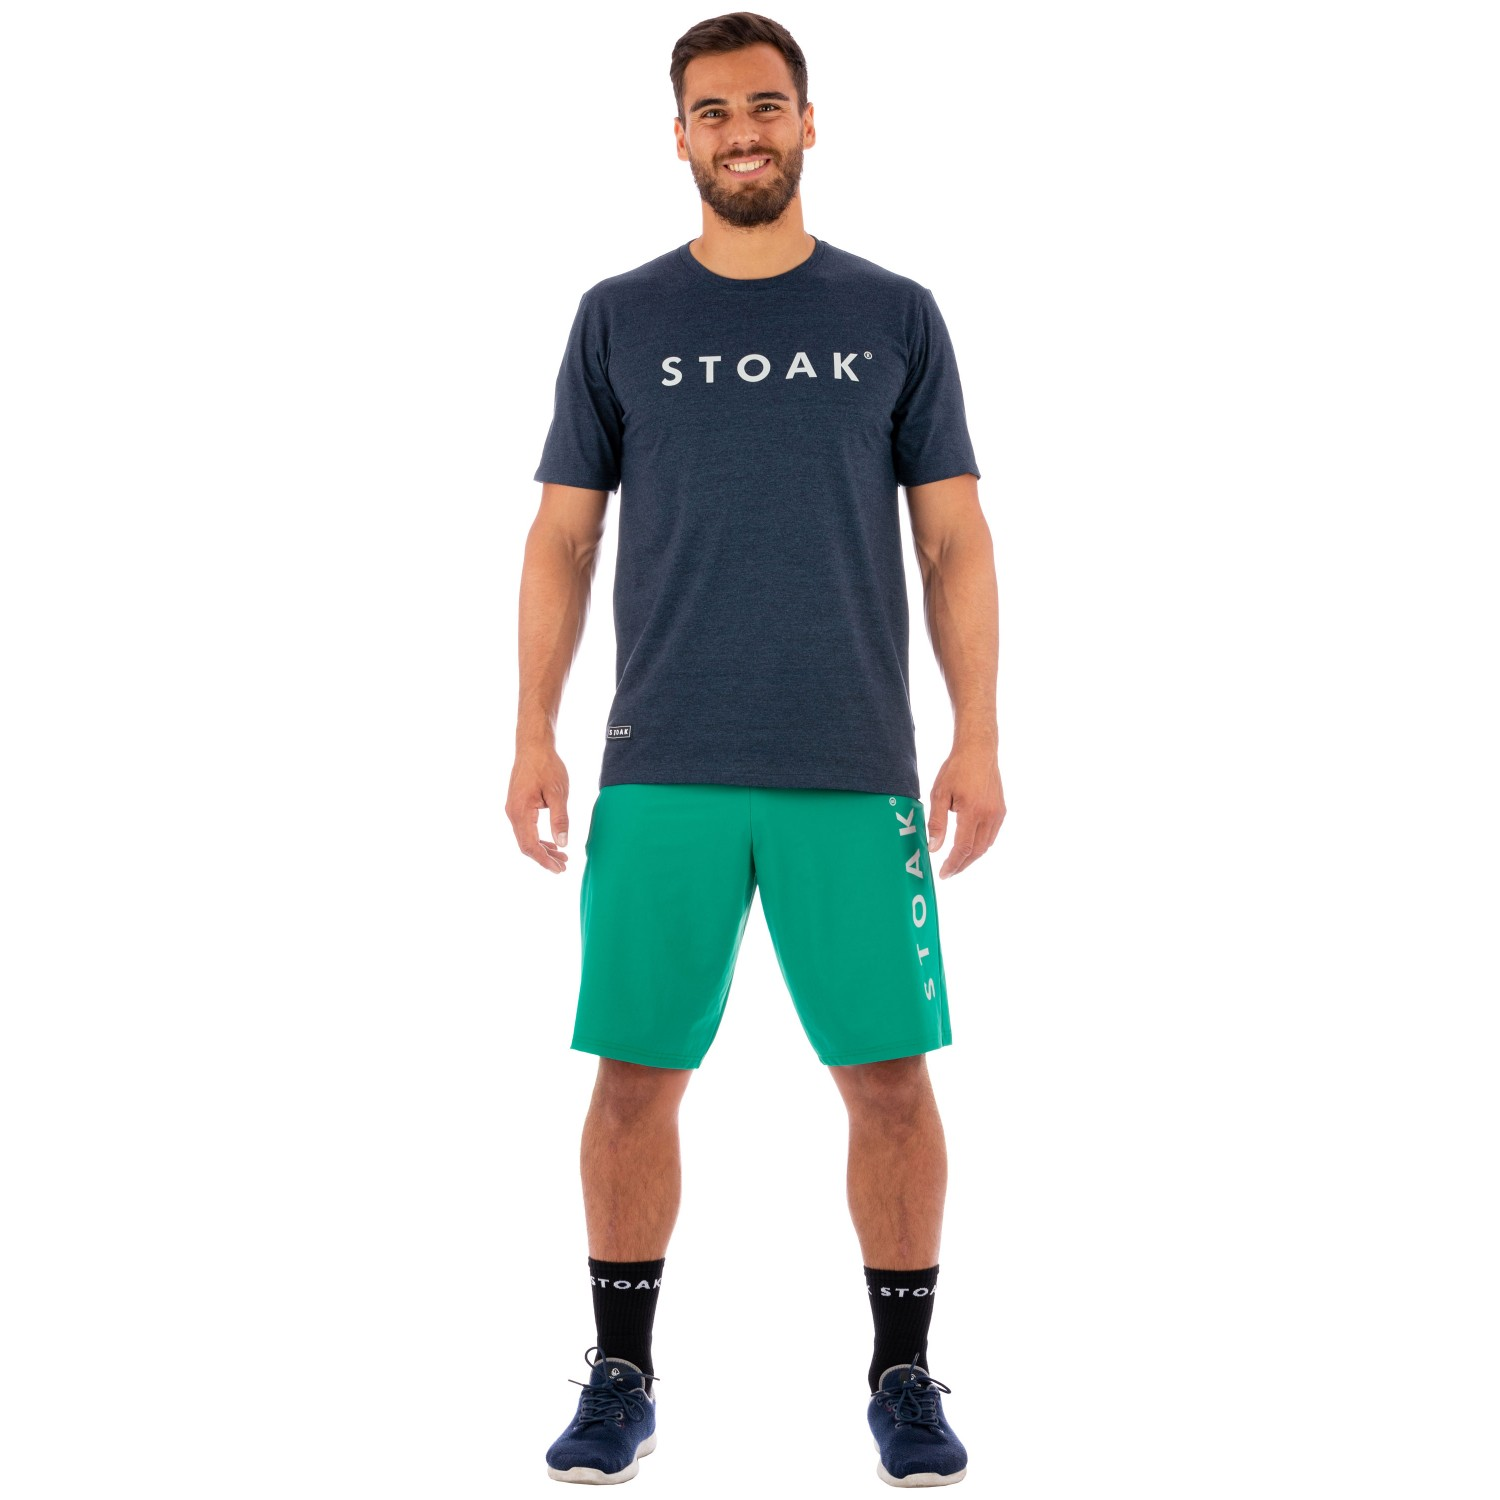 STOAK DEEP SEA - CLEAN II Package T-shirt + Athletic Shorts